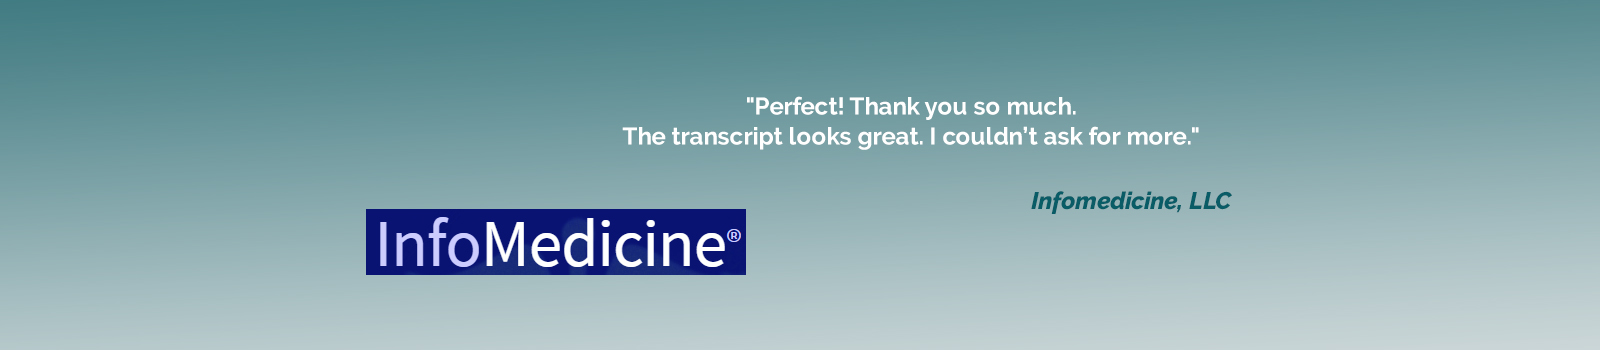 Transcription Experts_Testimonials10